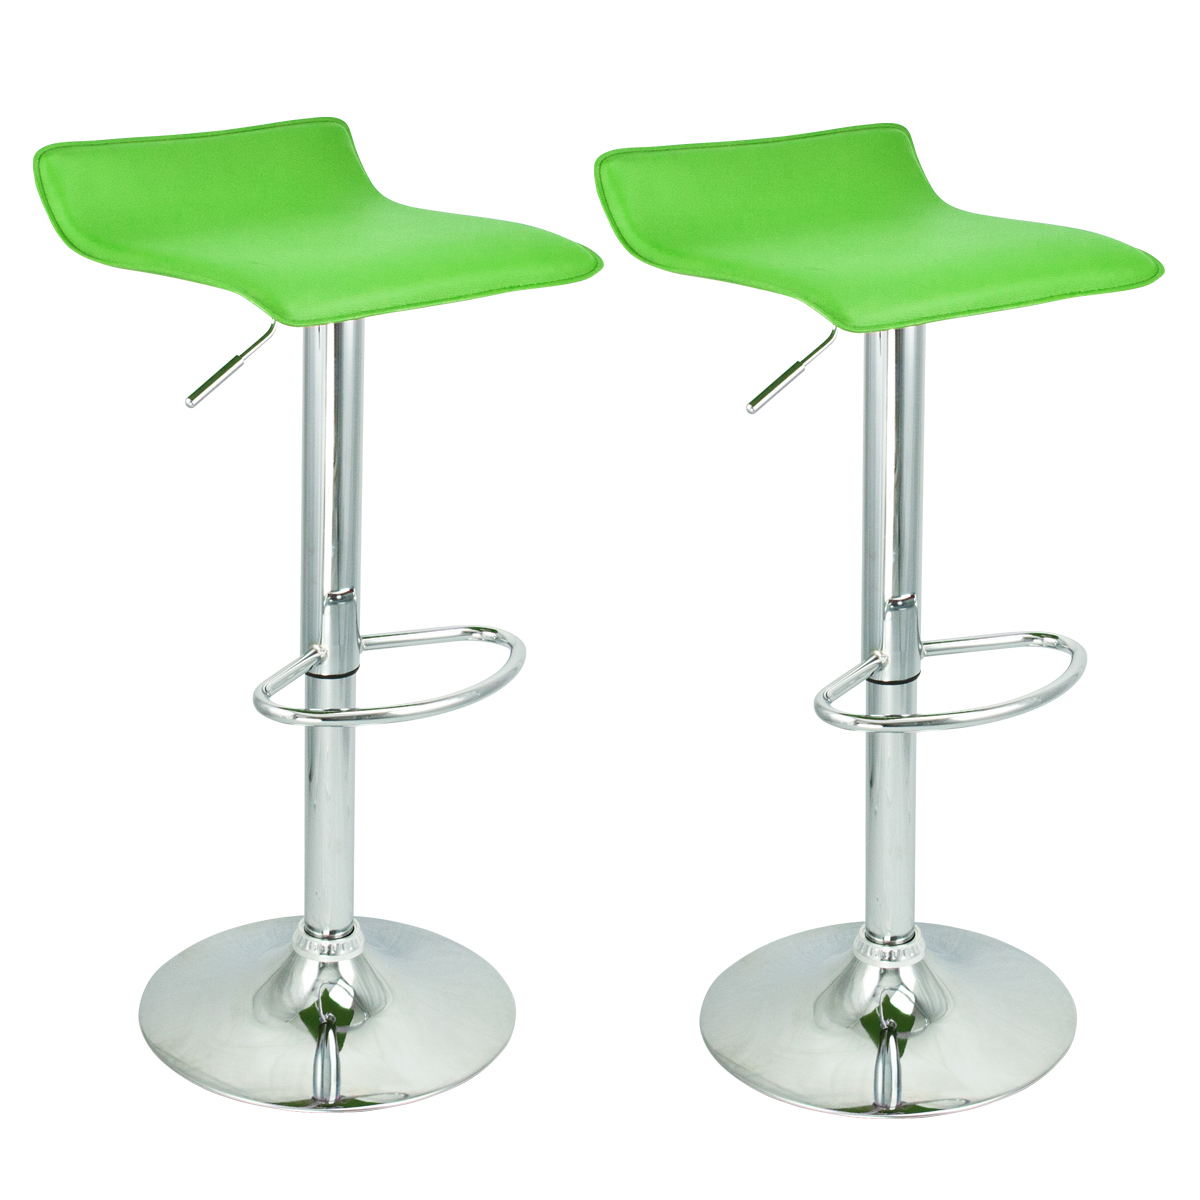 New Kitchen Chair Bar Stool Airlift Swivel Barstools  : 41403at from www.ebay.com size 1200 x 1200 jpeg 303kB